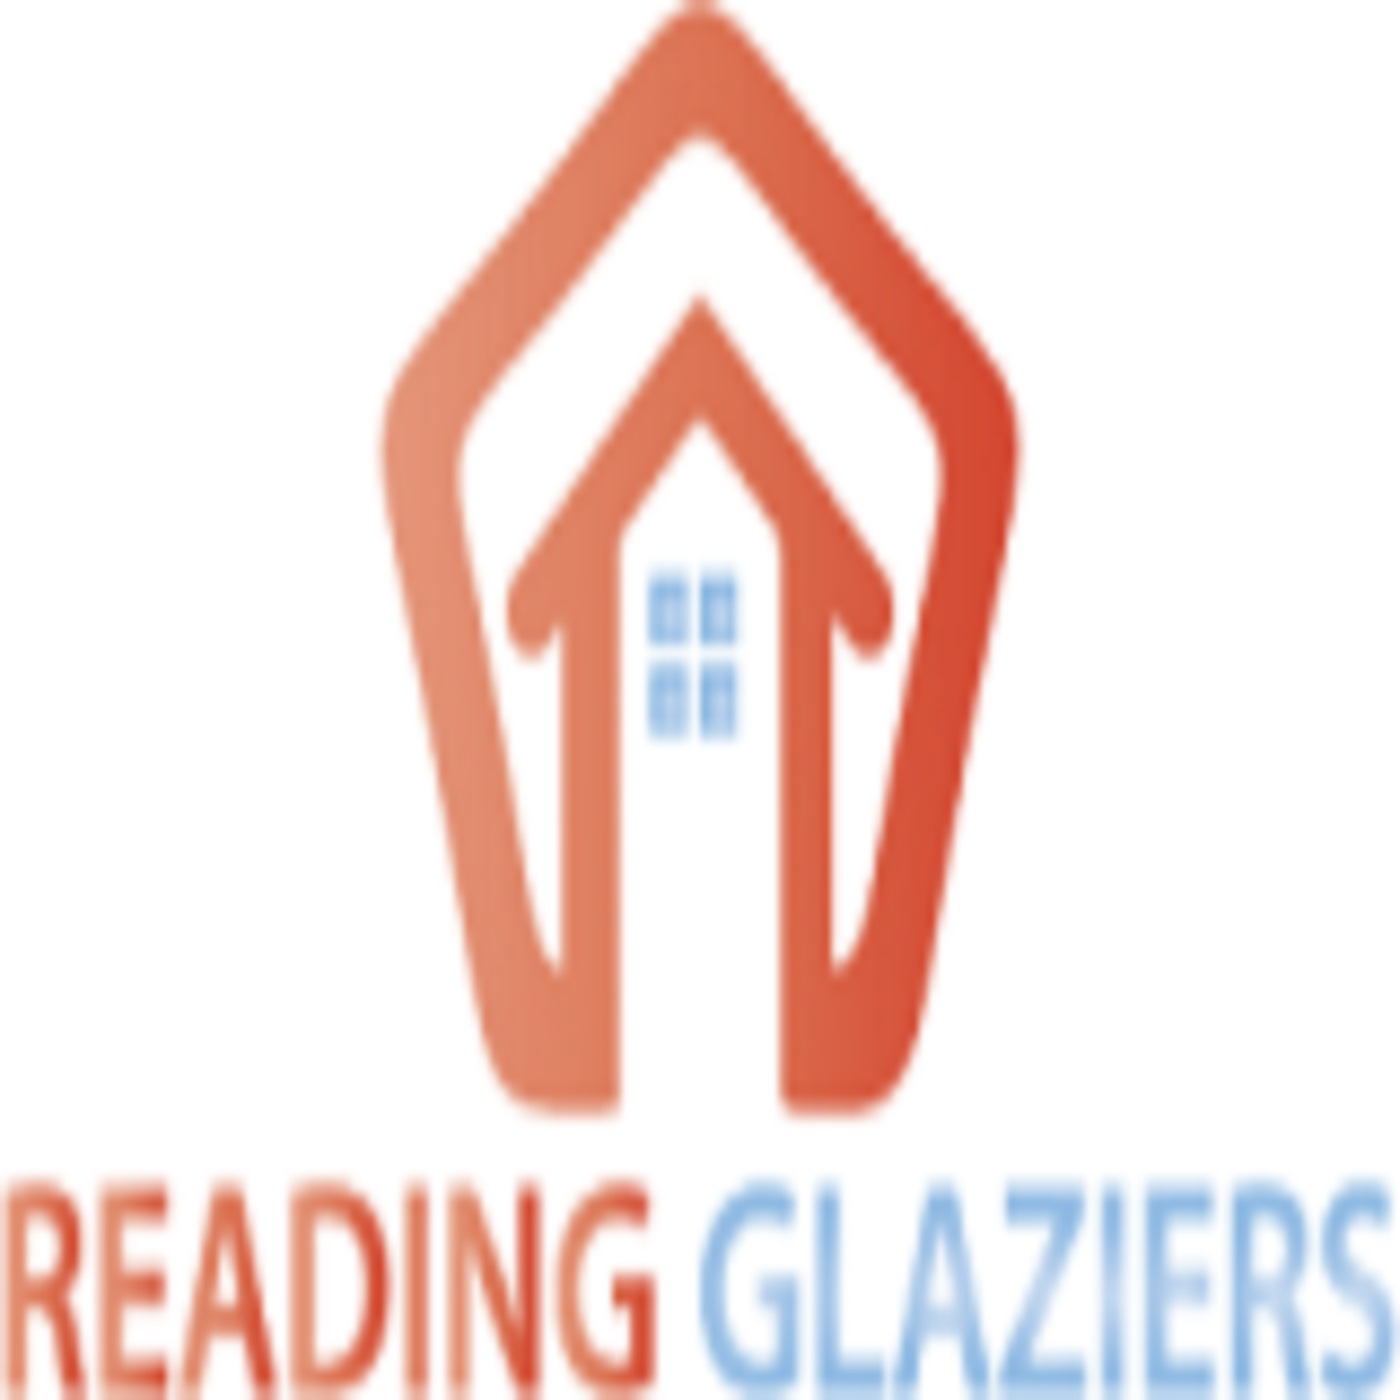 Reading Glaziers - Double Glazing Window Repairs